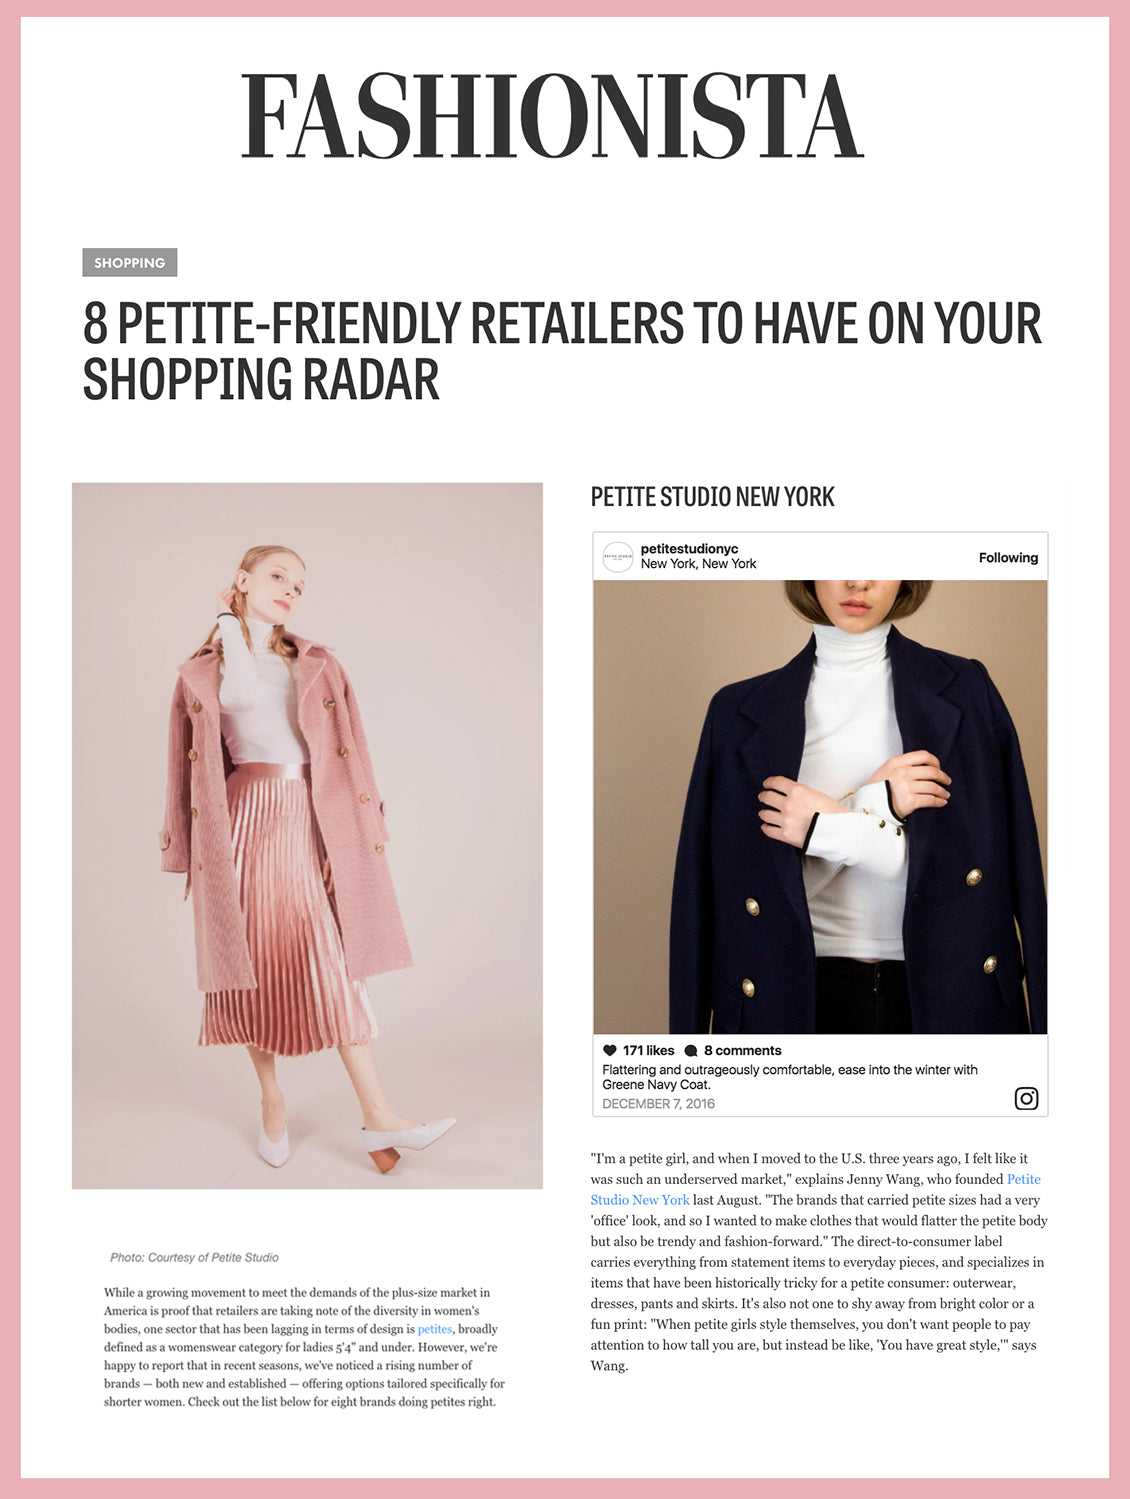 8 Petite-Friendly Retailers to have on your shopping radar